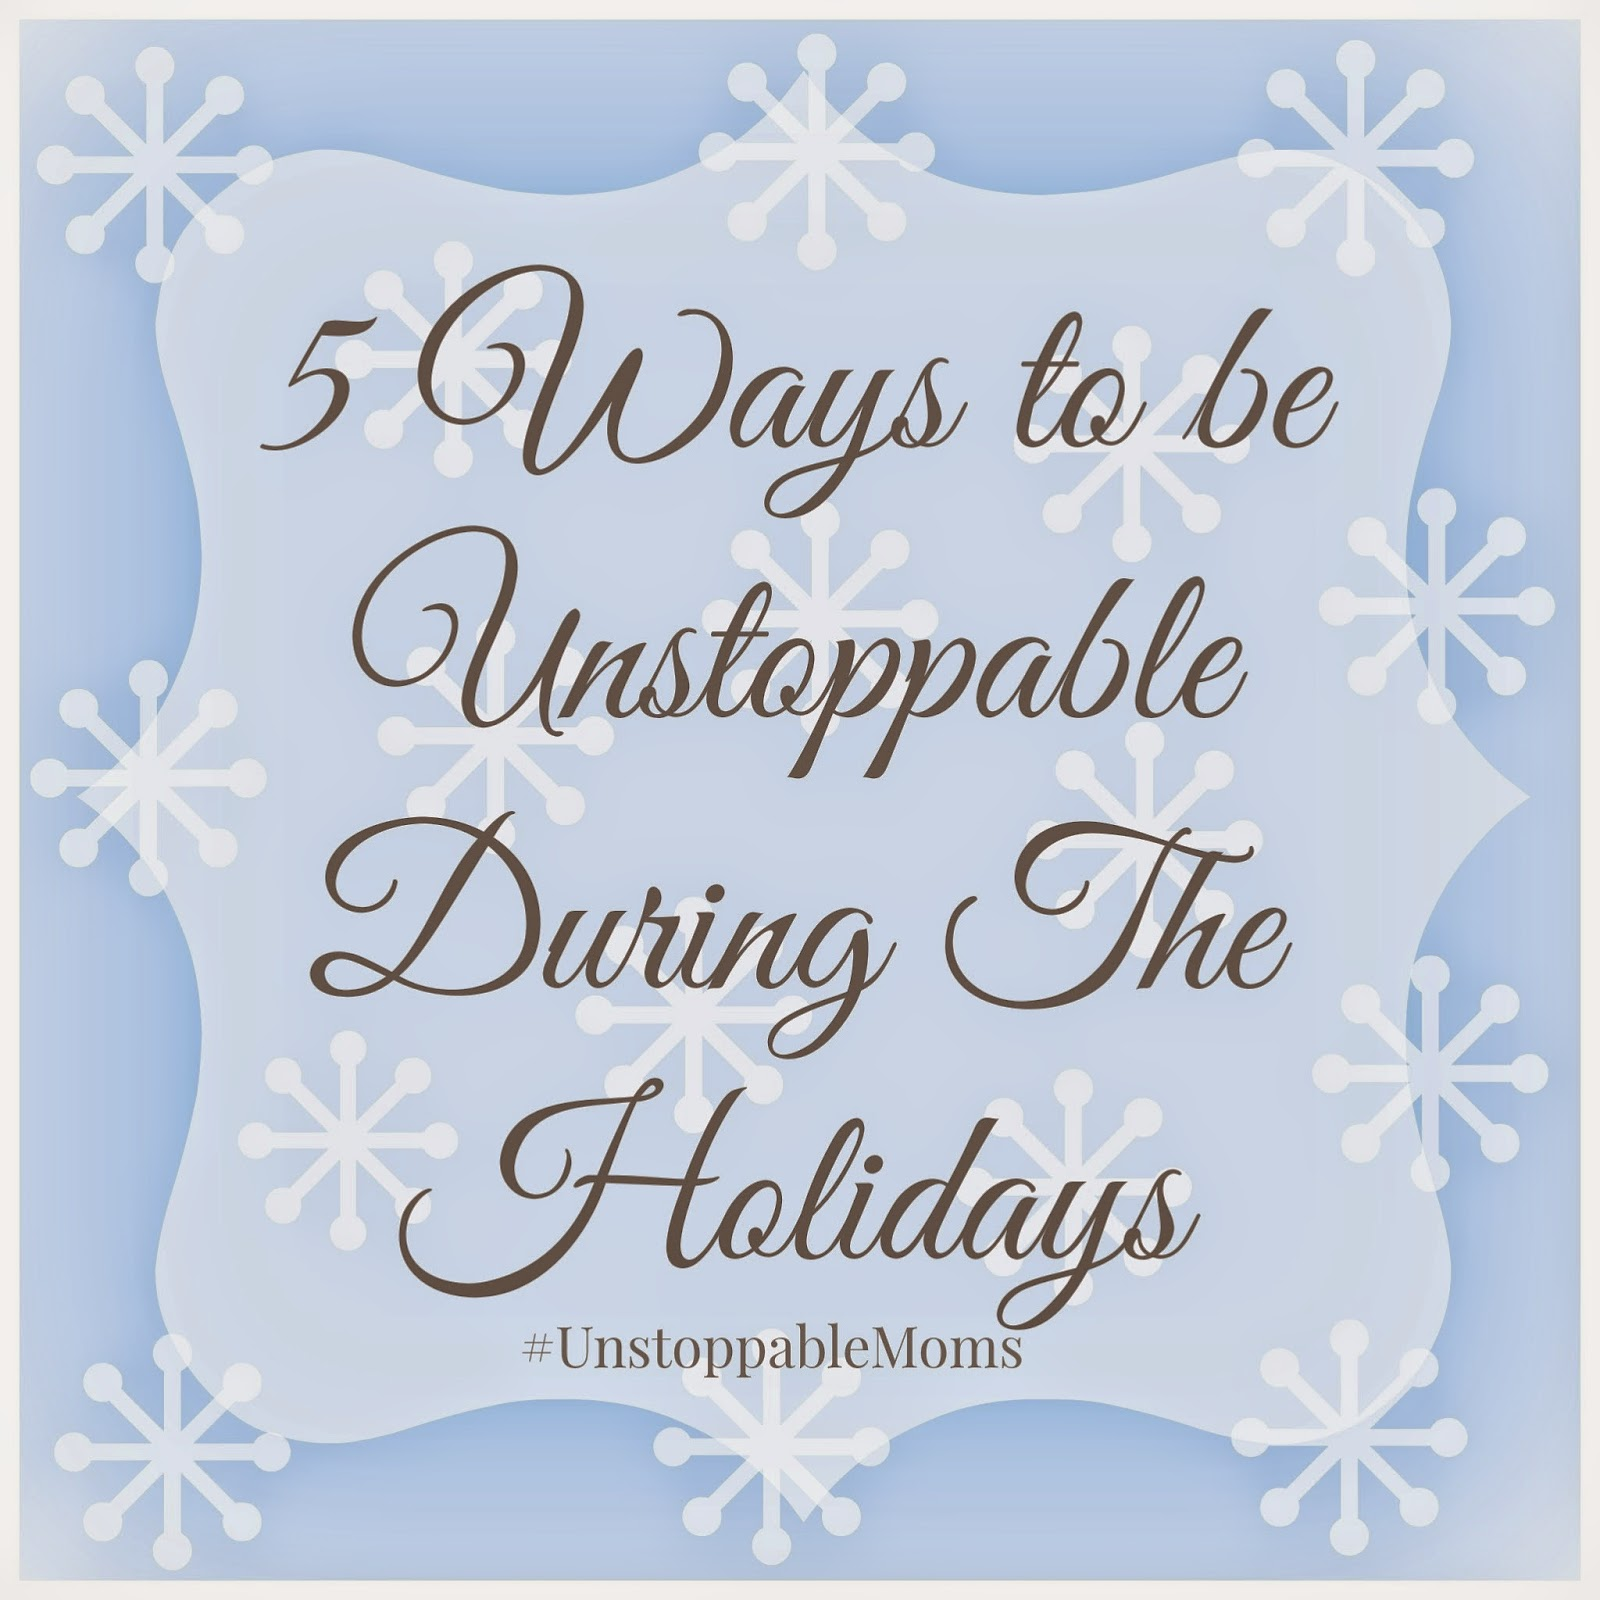 5 Ways To Be Unstoppable During the Holidays! #UnstoppableMoms #ad